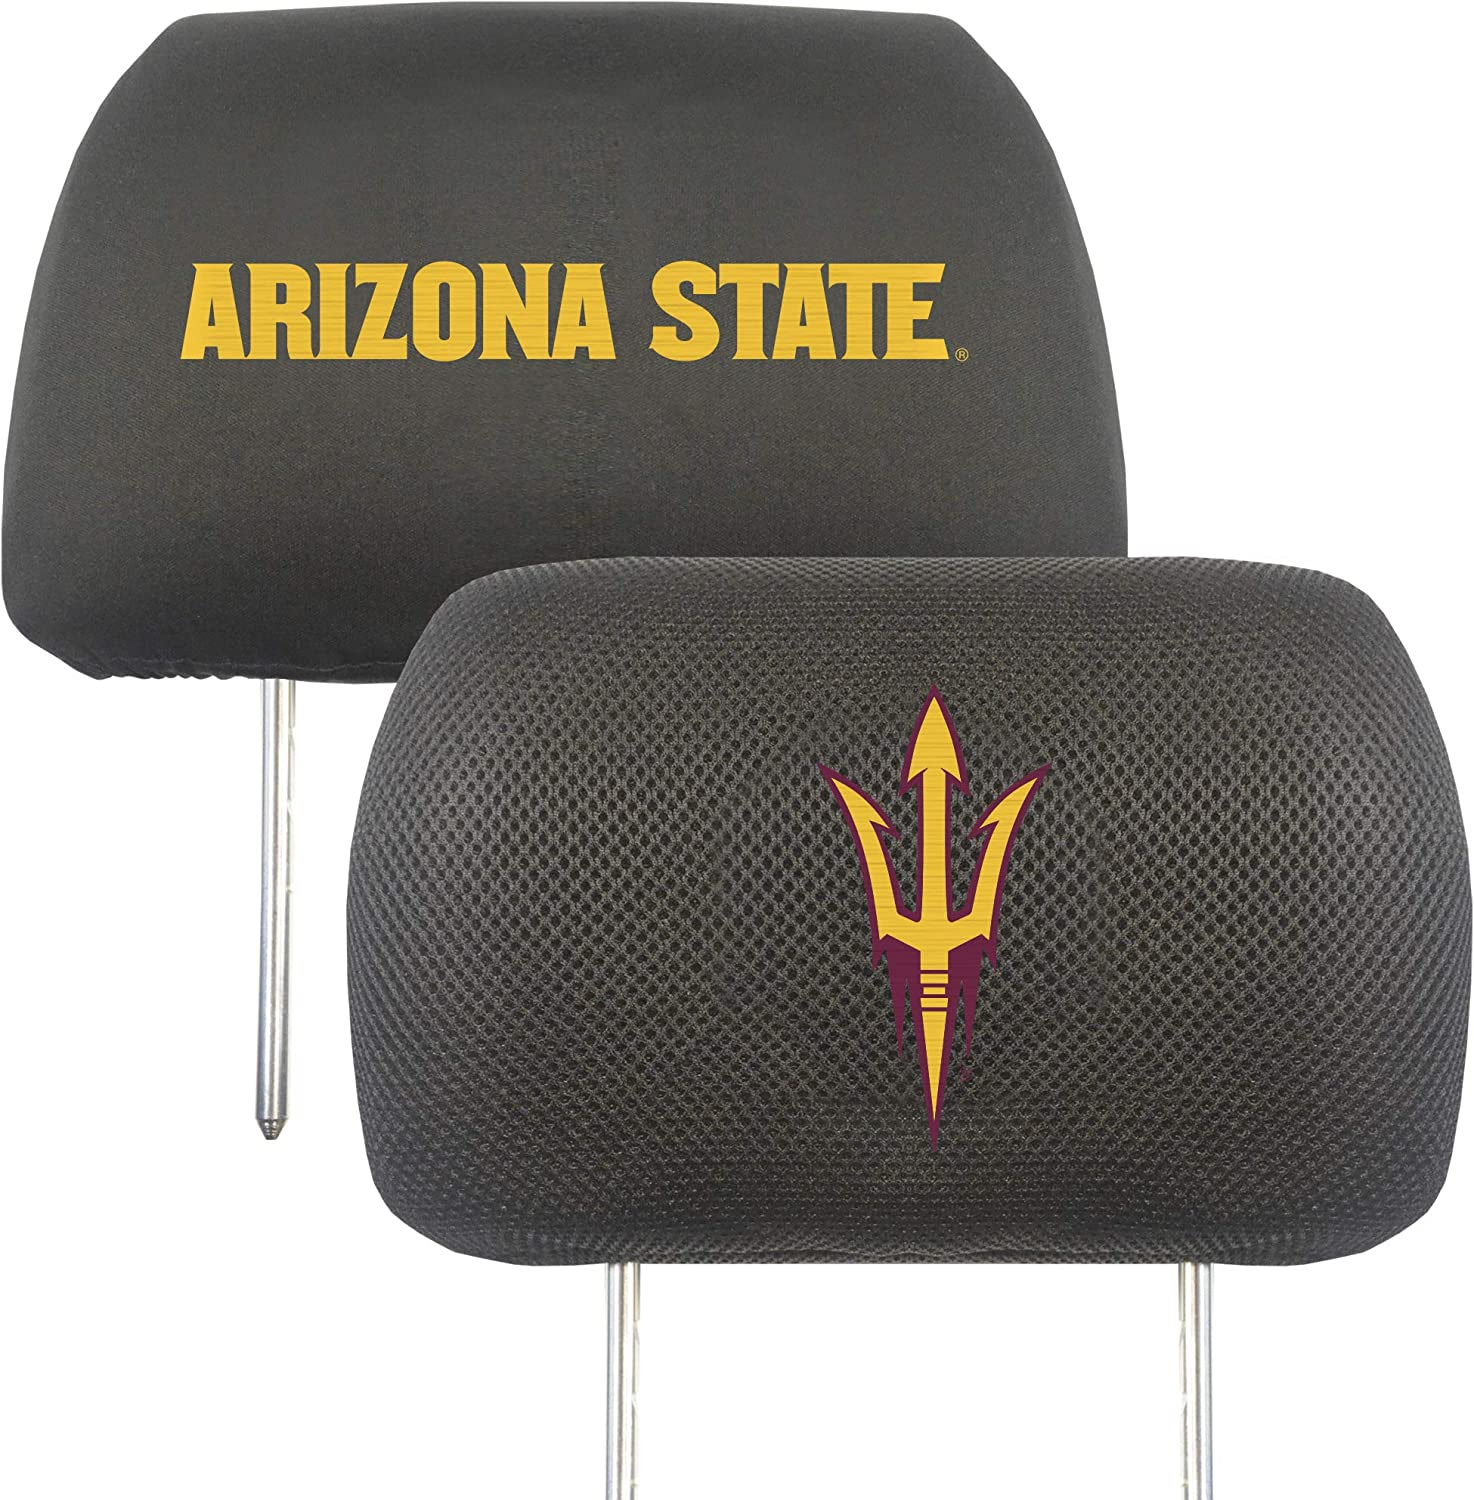 FANMATS NCAA Unisex-Adult Auto Headrest Covers